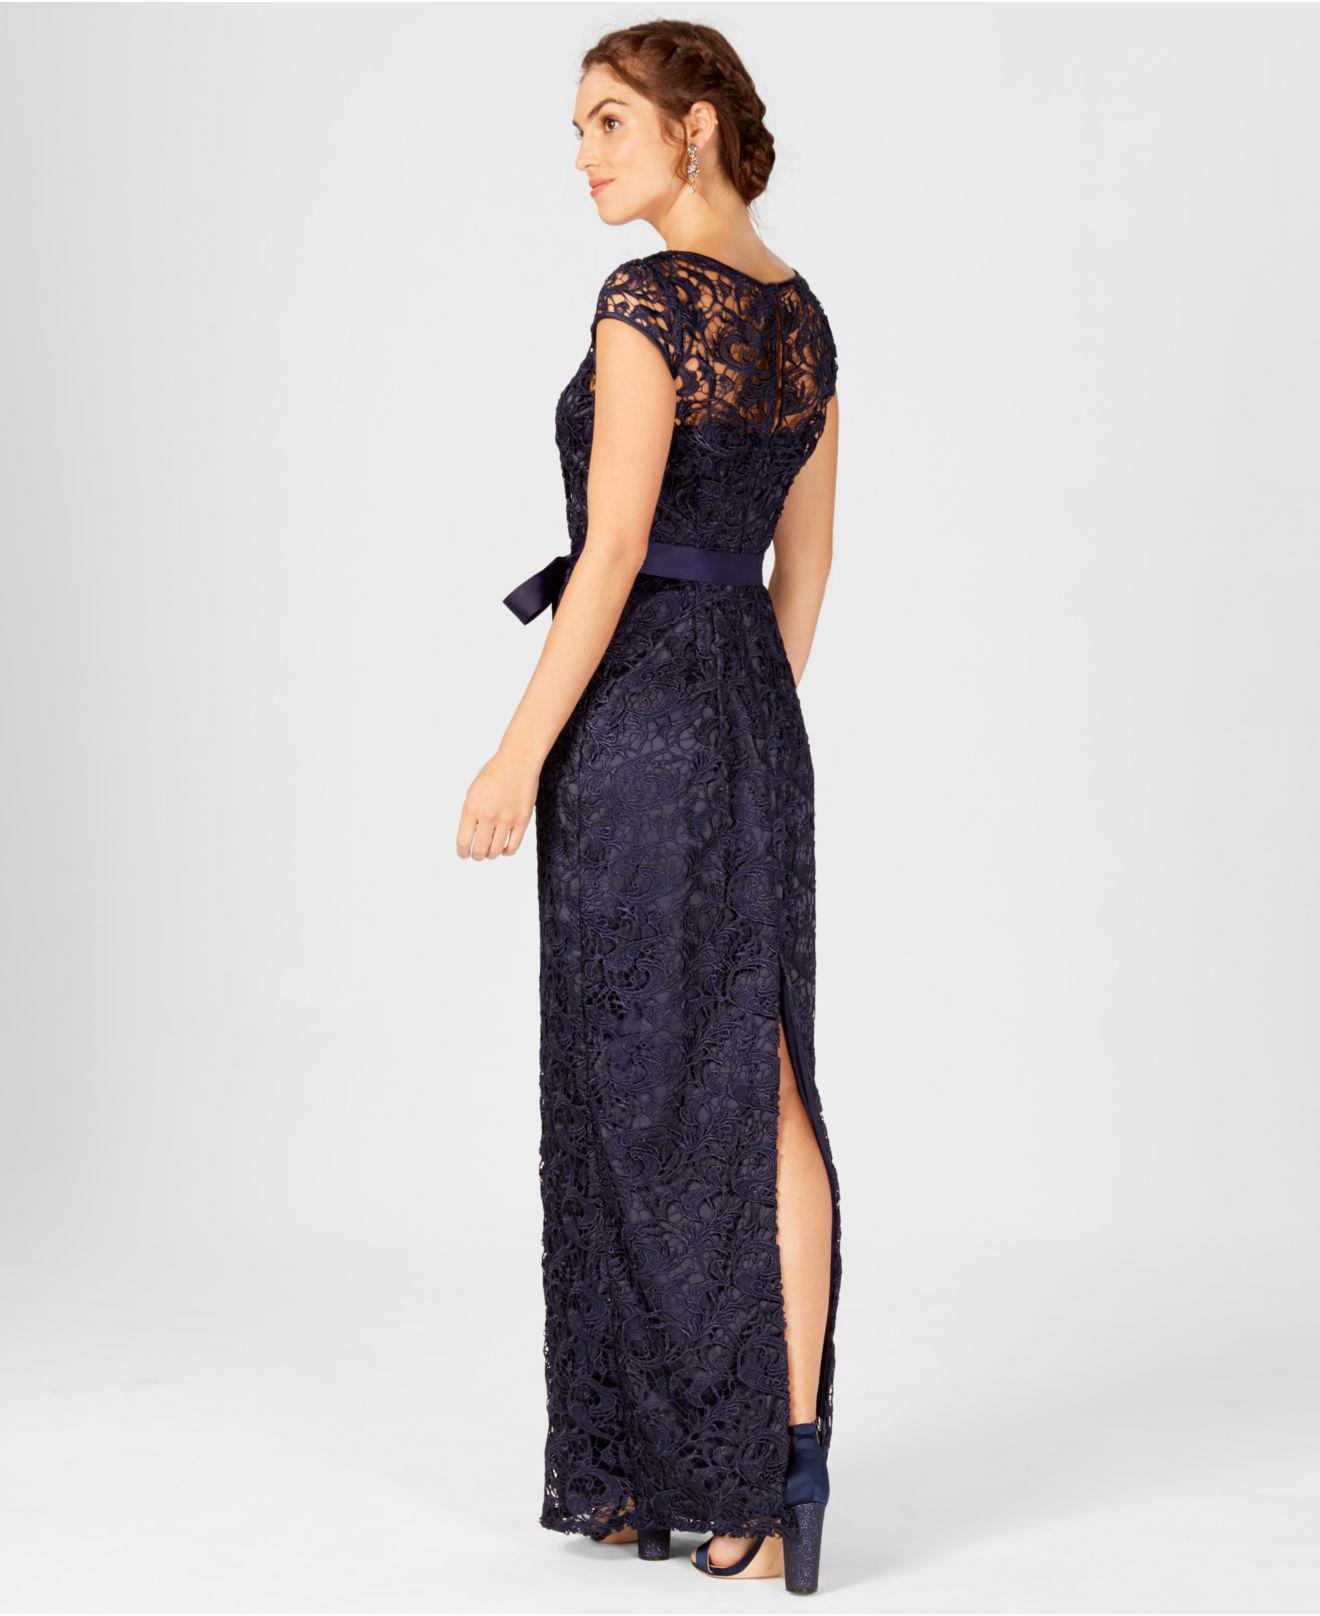 2748923ff8e2b Lyst - Adrianna Papell Cap-sleeve Illusion Lace Gown in Blue